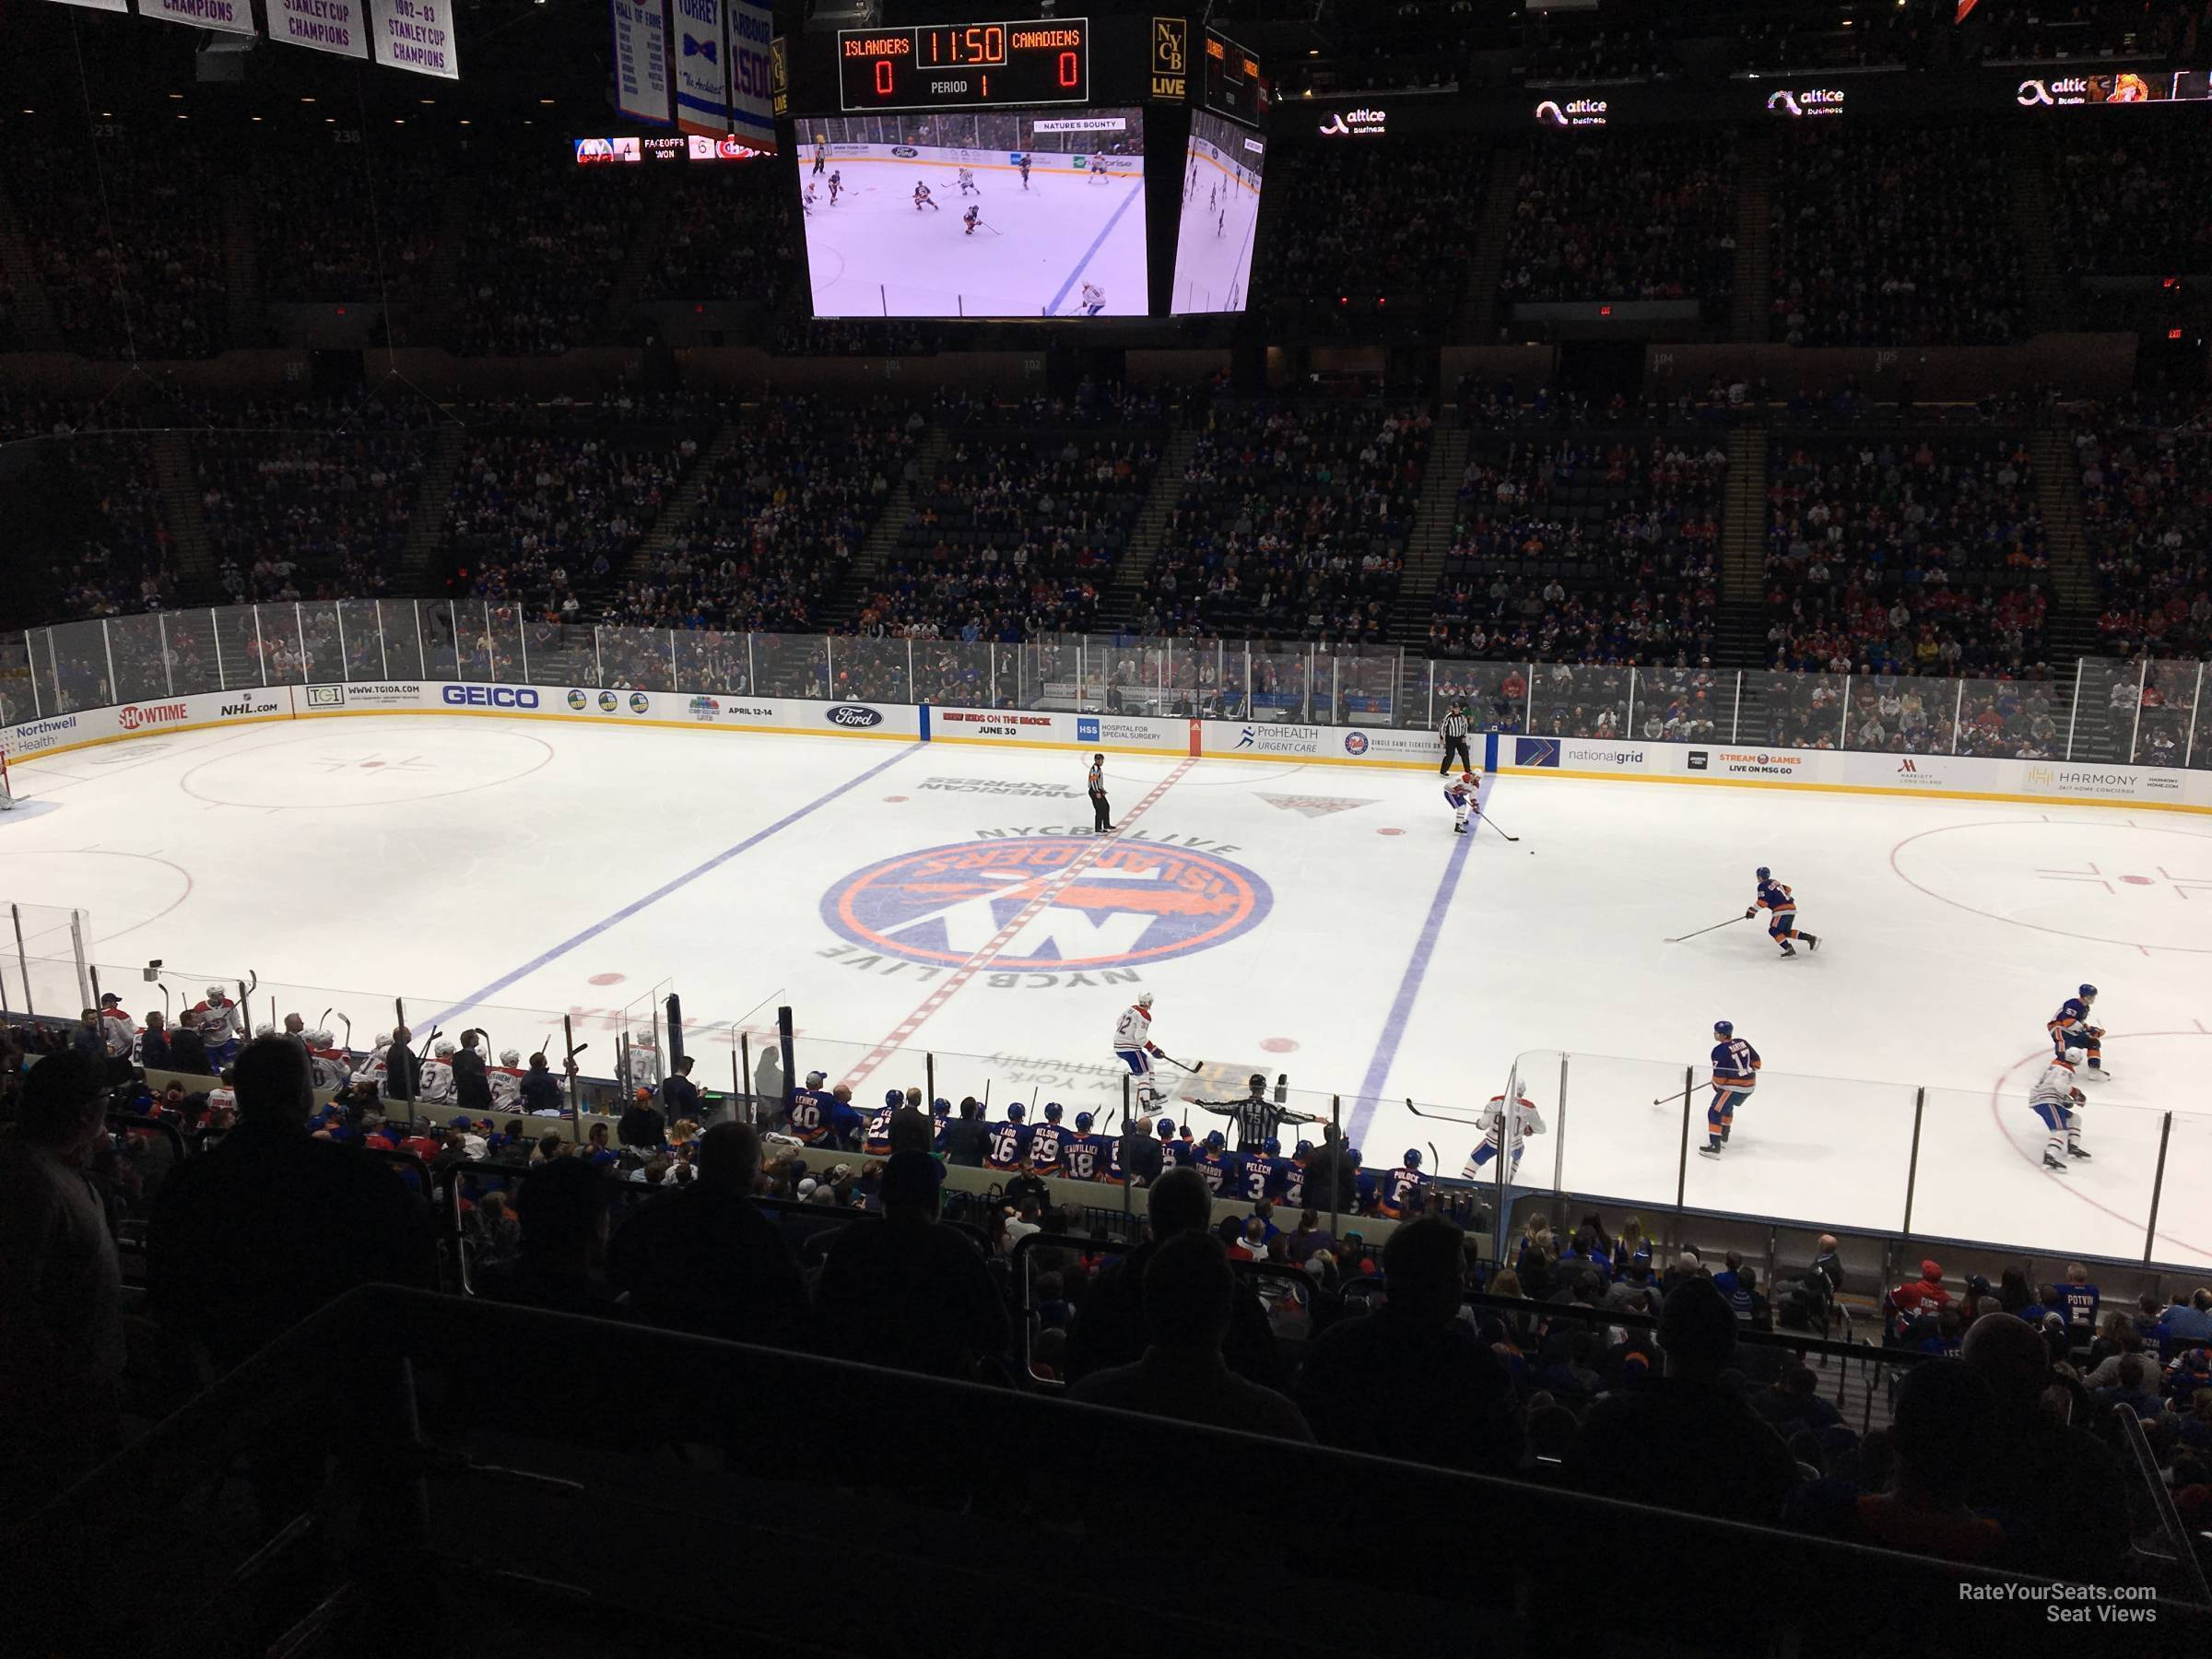 Section 222 seat view